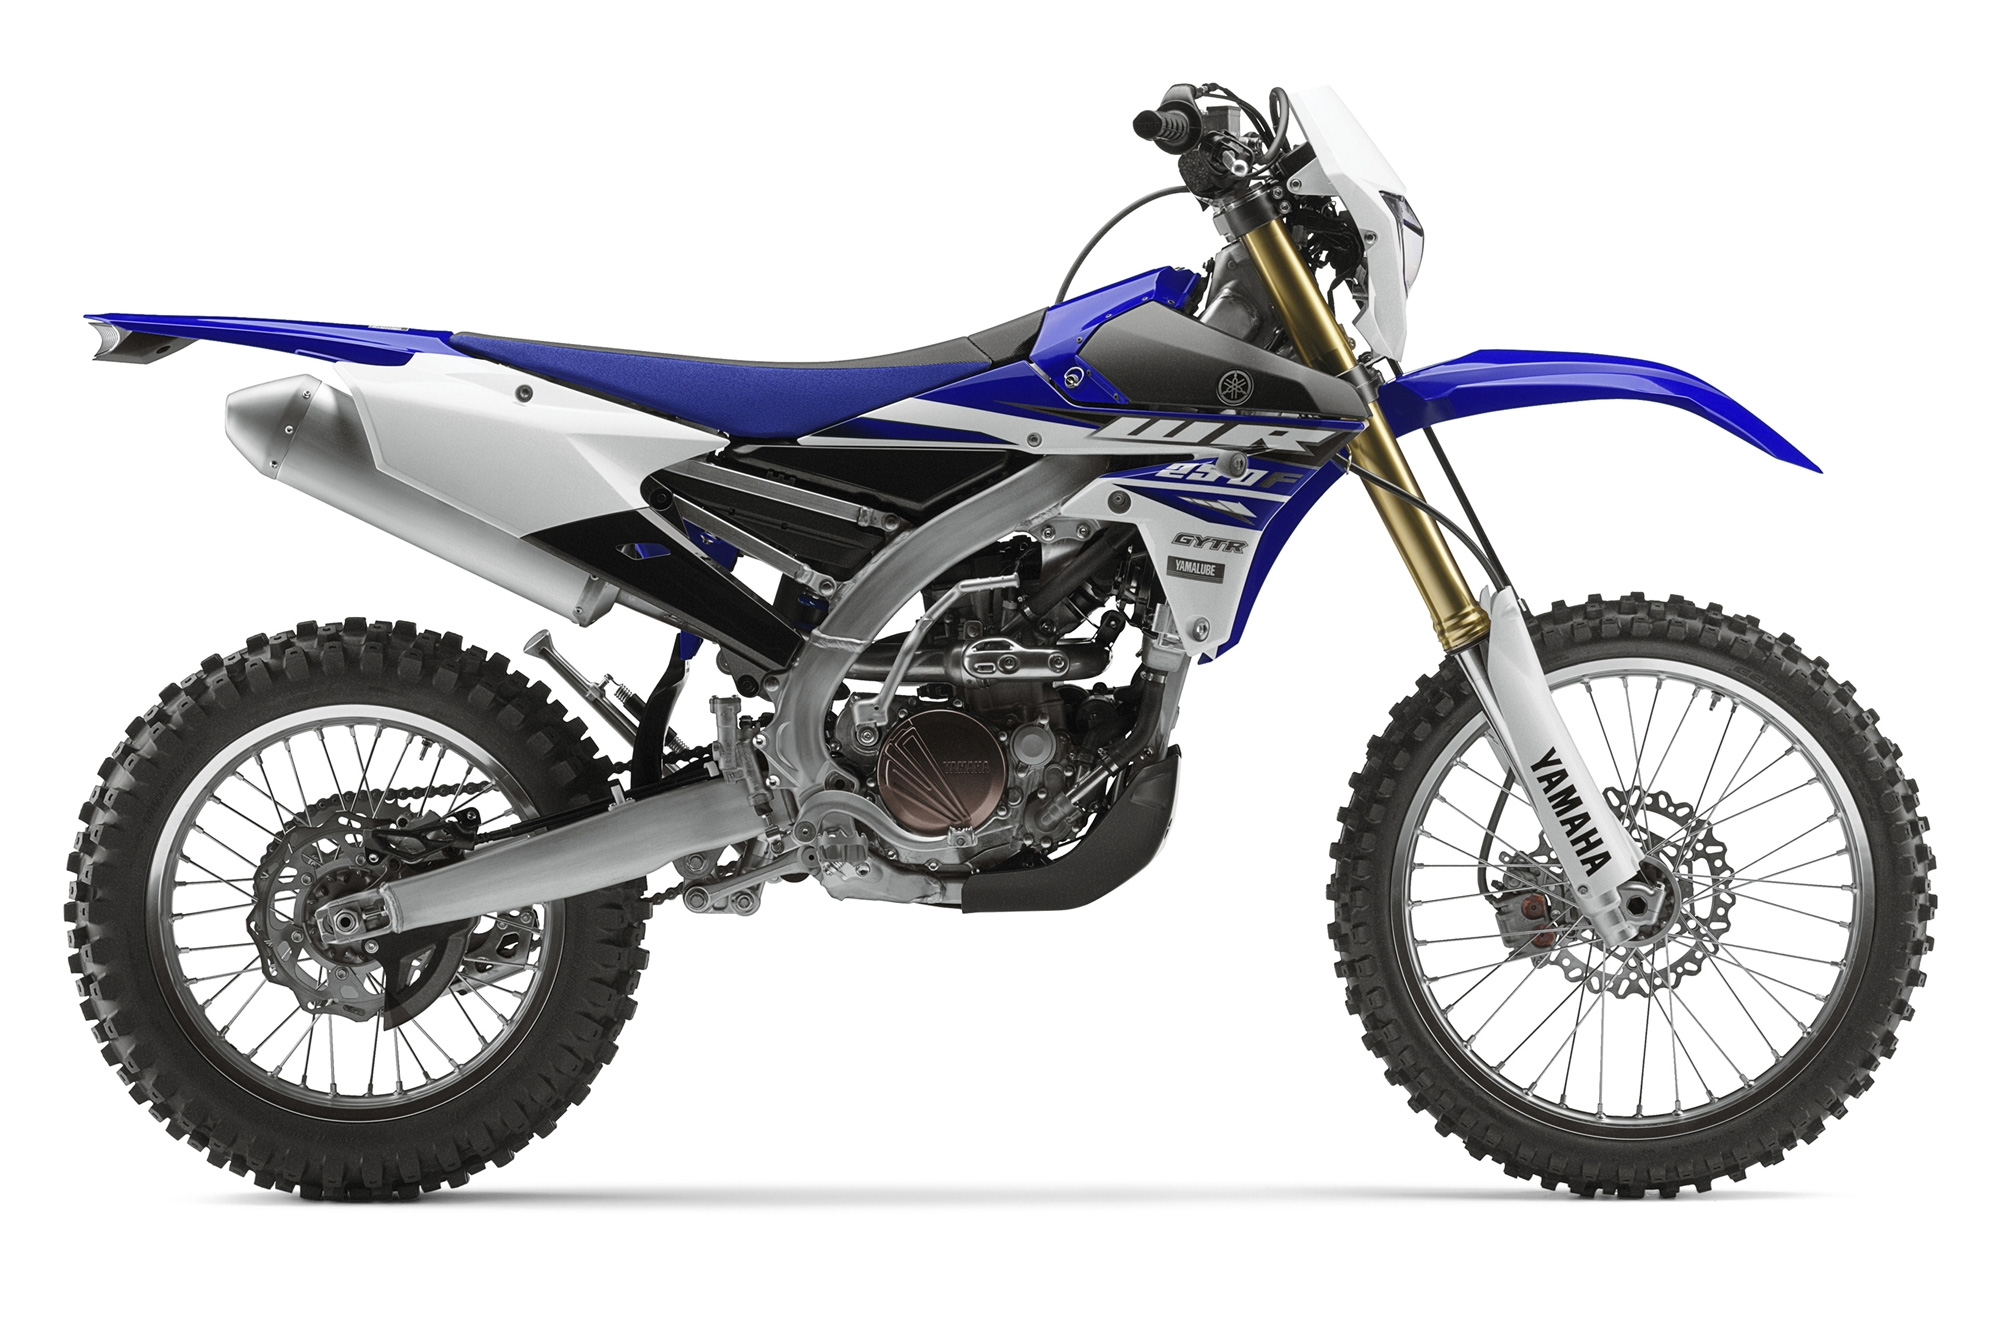 2015 Yamaha WR250F- First Look Motorcycle Review- Photos- Specs ...